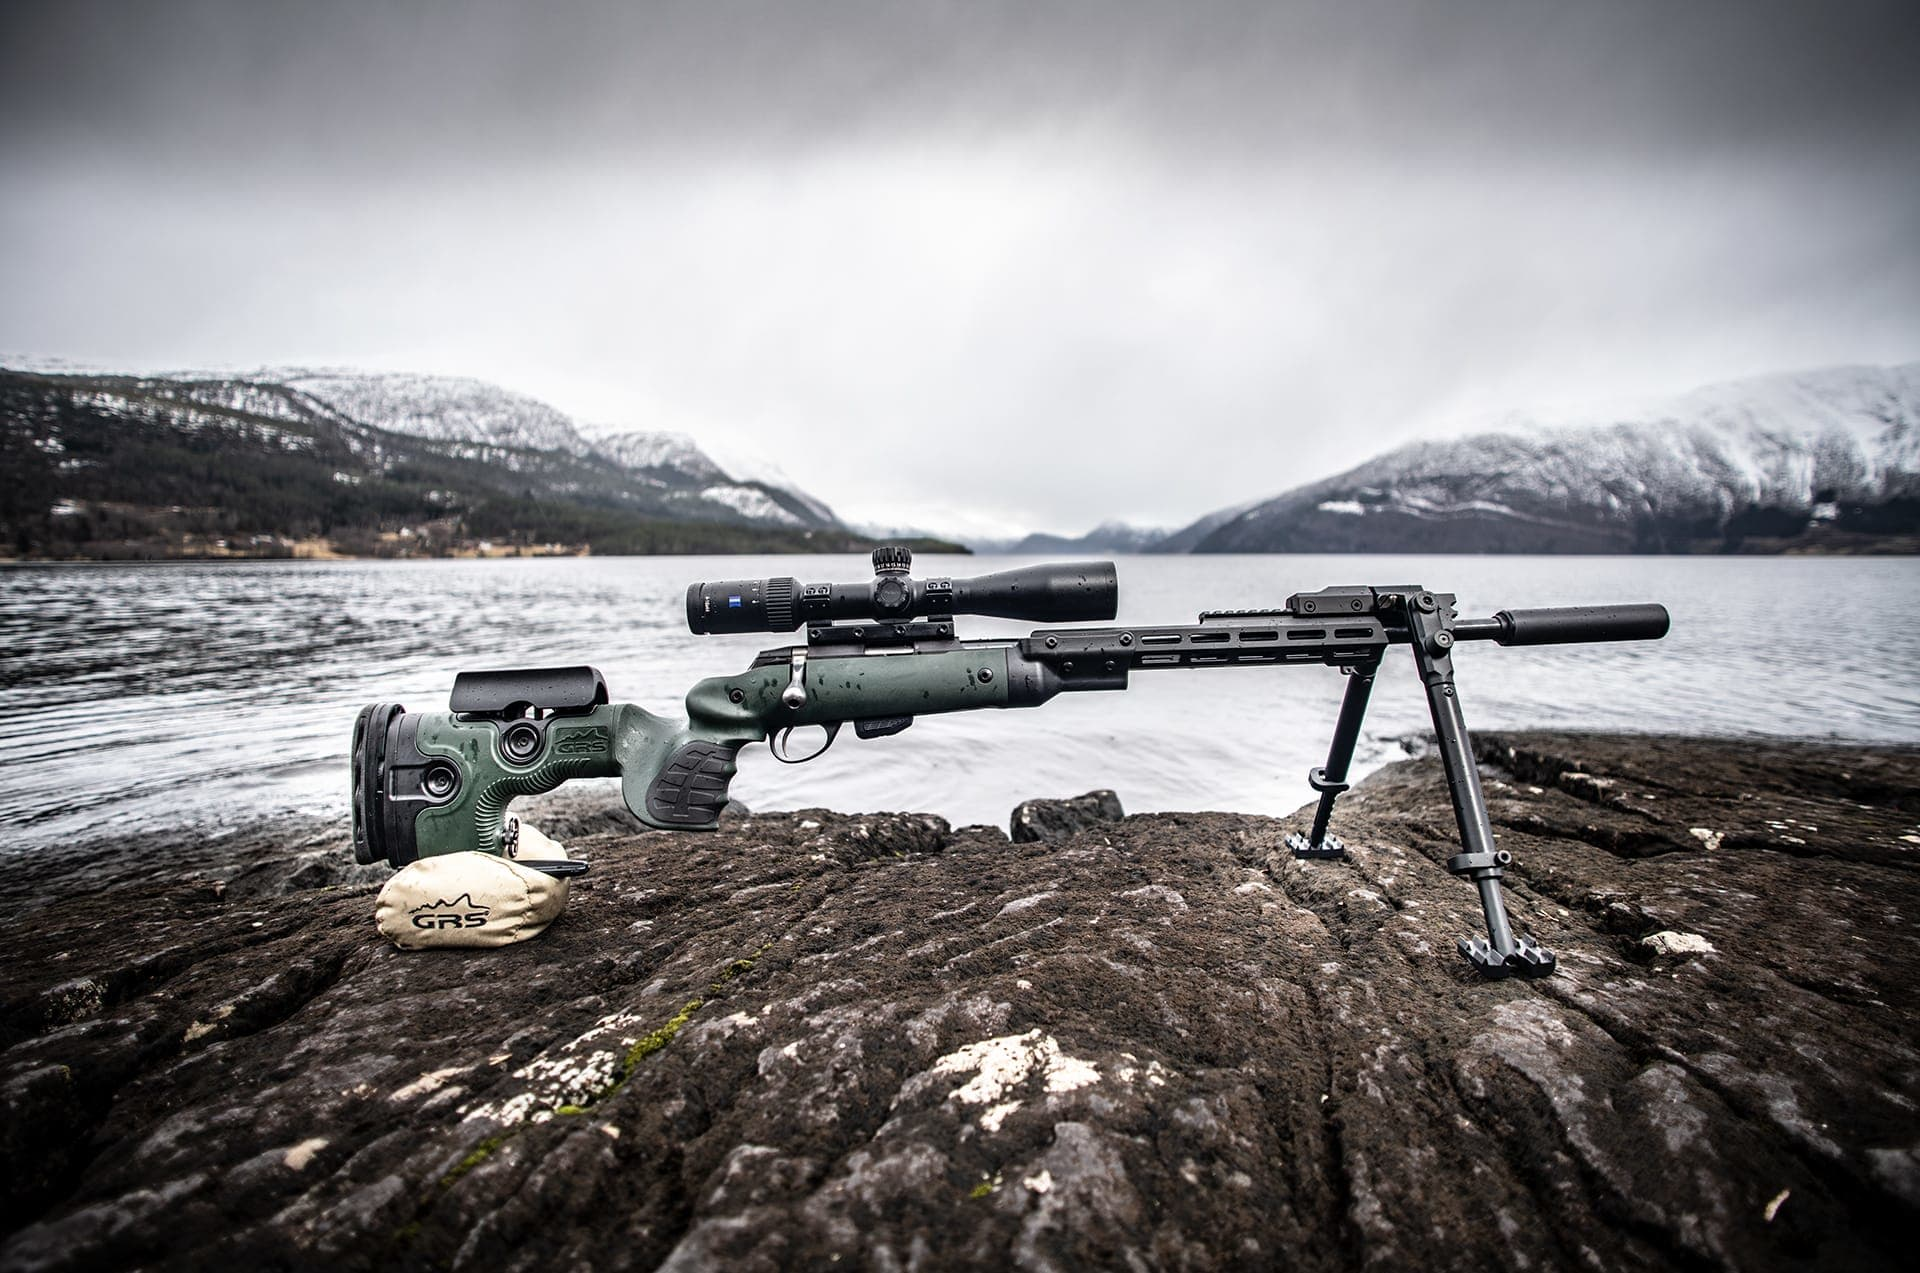 Photo of GRS Warg, complete rifle, with GRS Bipod, by Hornindal Lake